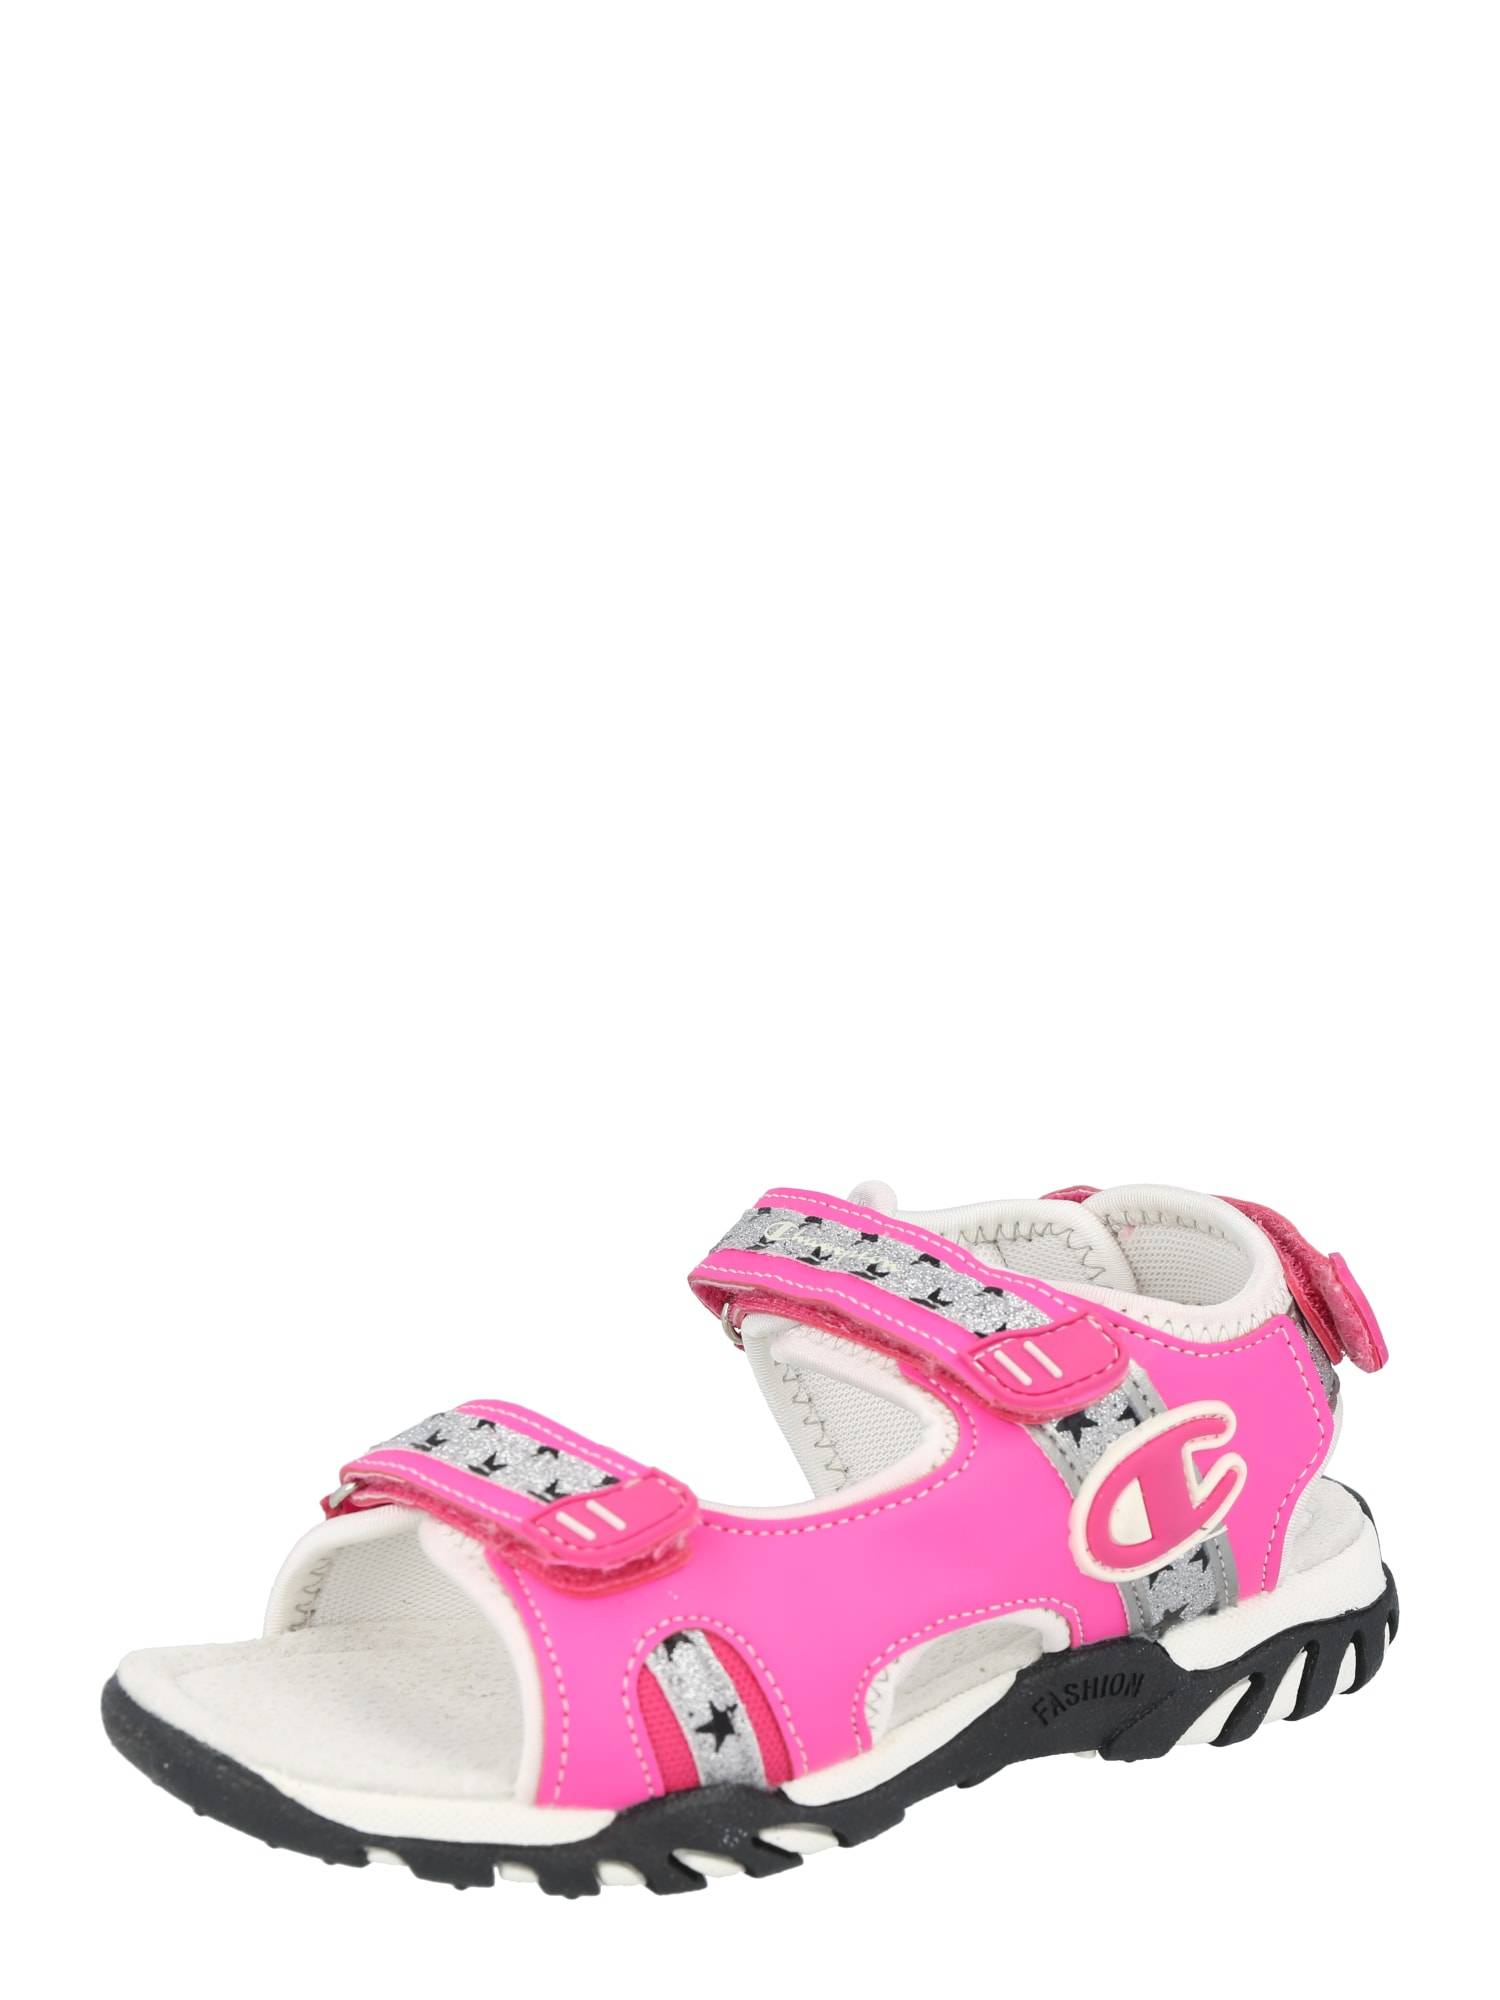 Champion Authentic Athletic Apparel Sandales 'FLORIDA'  - Rose - Taille: 30 - girl